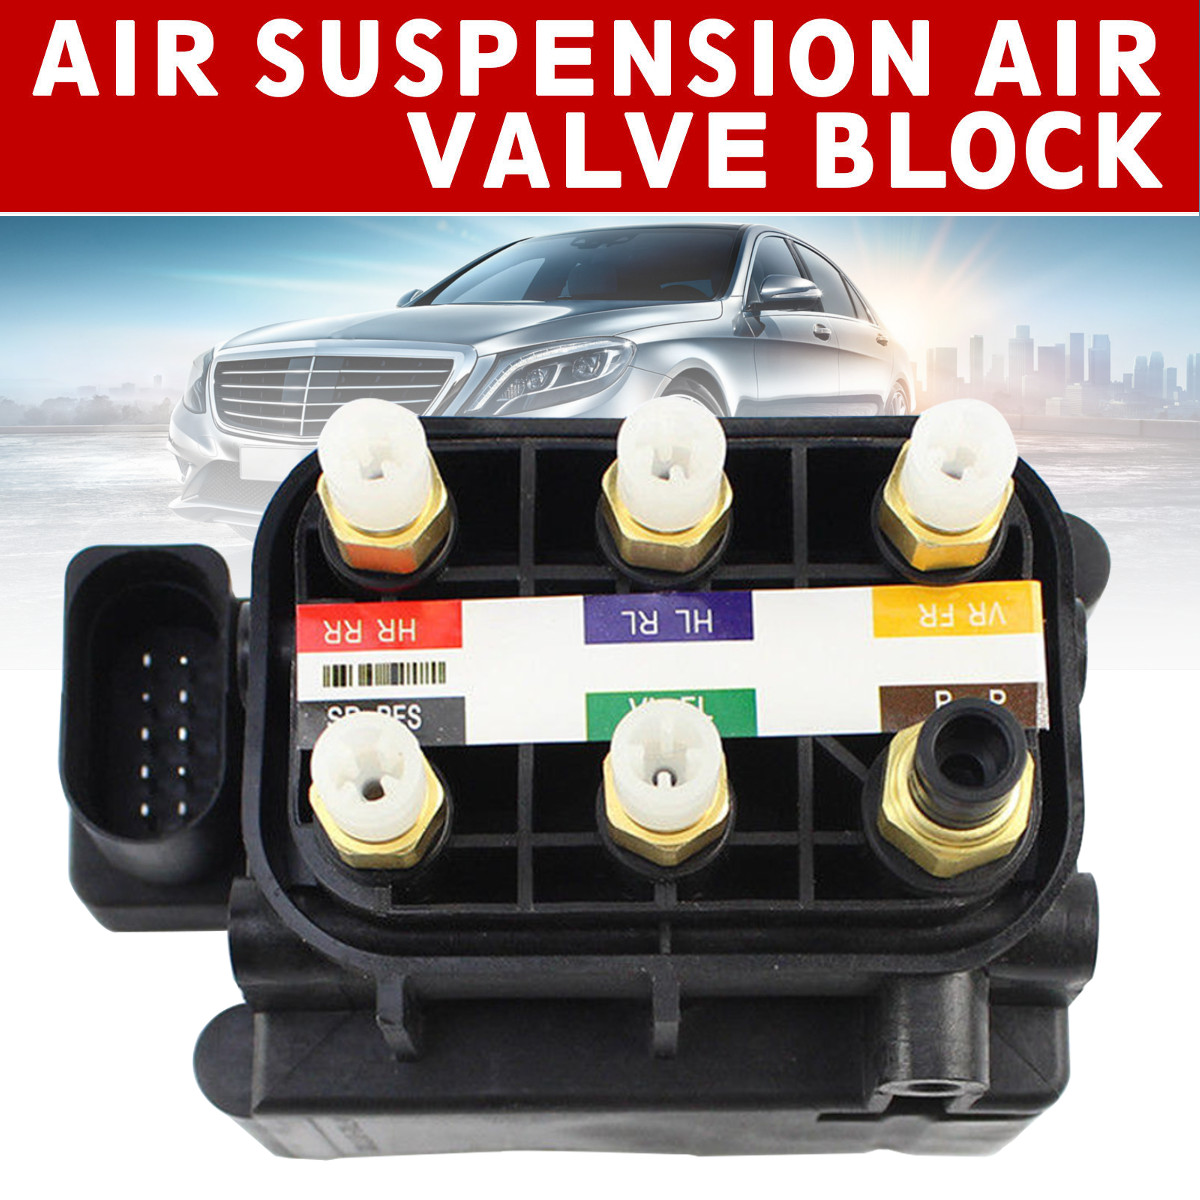 New Air Suspension Air Supply Air Suspension Solenoid Valve Block For Mercedes-Benz GL350 450 550 ML250New Air Suspension Air Supply Air Suspension Solenoid Valve Block For Mercedes-Benz GL350 450 550 ML250